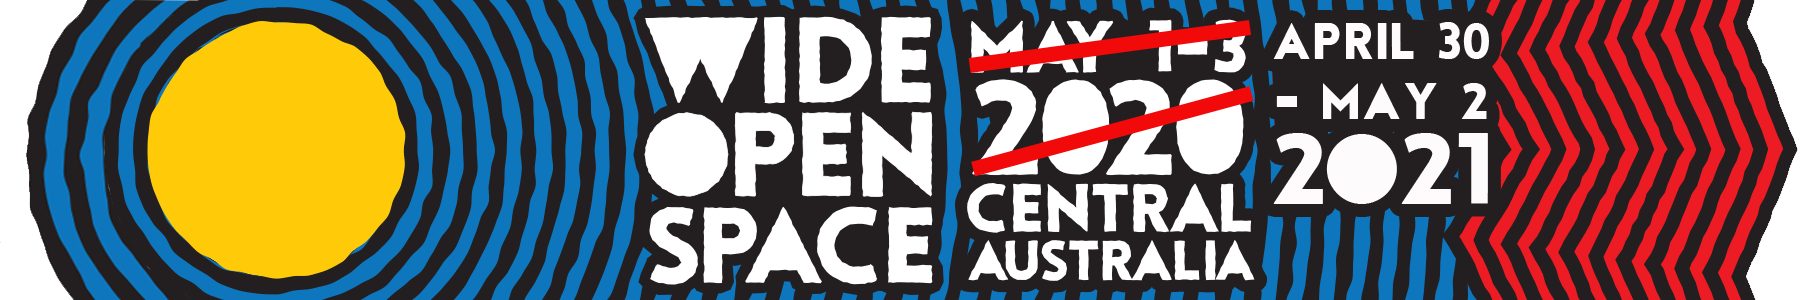 Wide Open Space Festival